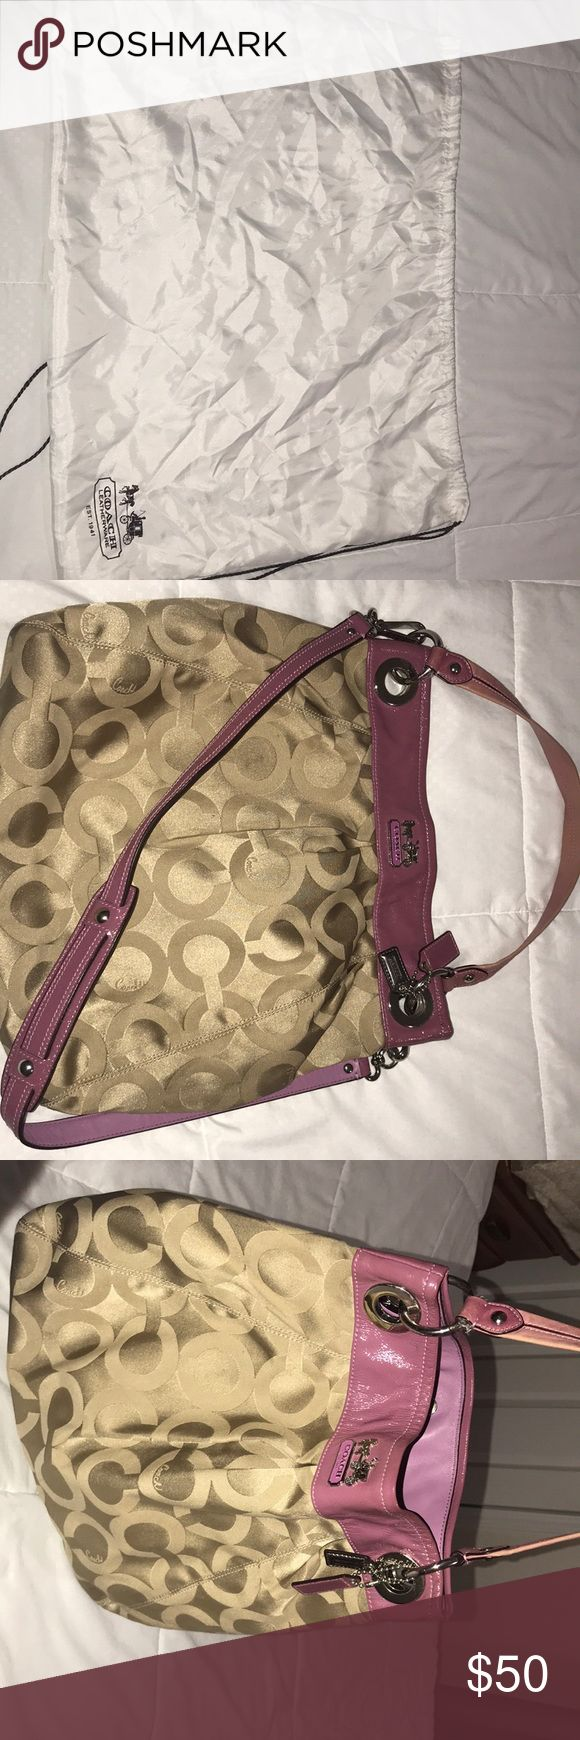 Coach hobo bag Beautiful Coach hobo style bag in khaki OP ART with lavender/purple accents and silver hardware. This bag is so roomy and holds so much! 2 strap design gives you the option to wear it many ways! Can be worn crossbody, on the shoulder, or simply on your wrist. There are some small stains on the bag but they will come out if you try to clean it.  100% authentic smoke free and pet free home Coach Bags Hobos